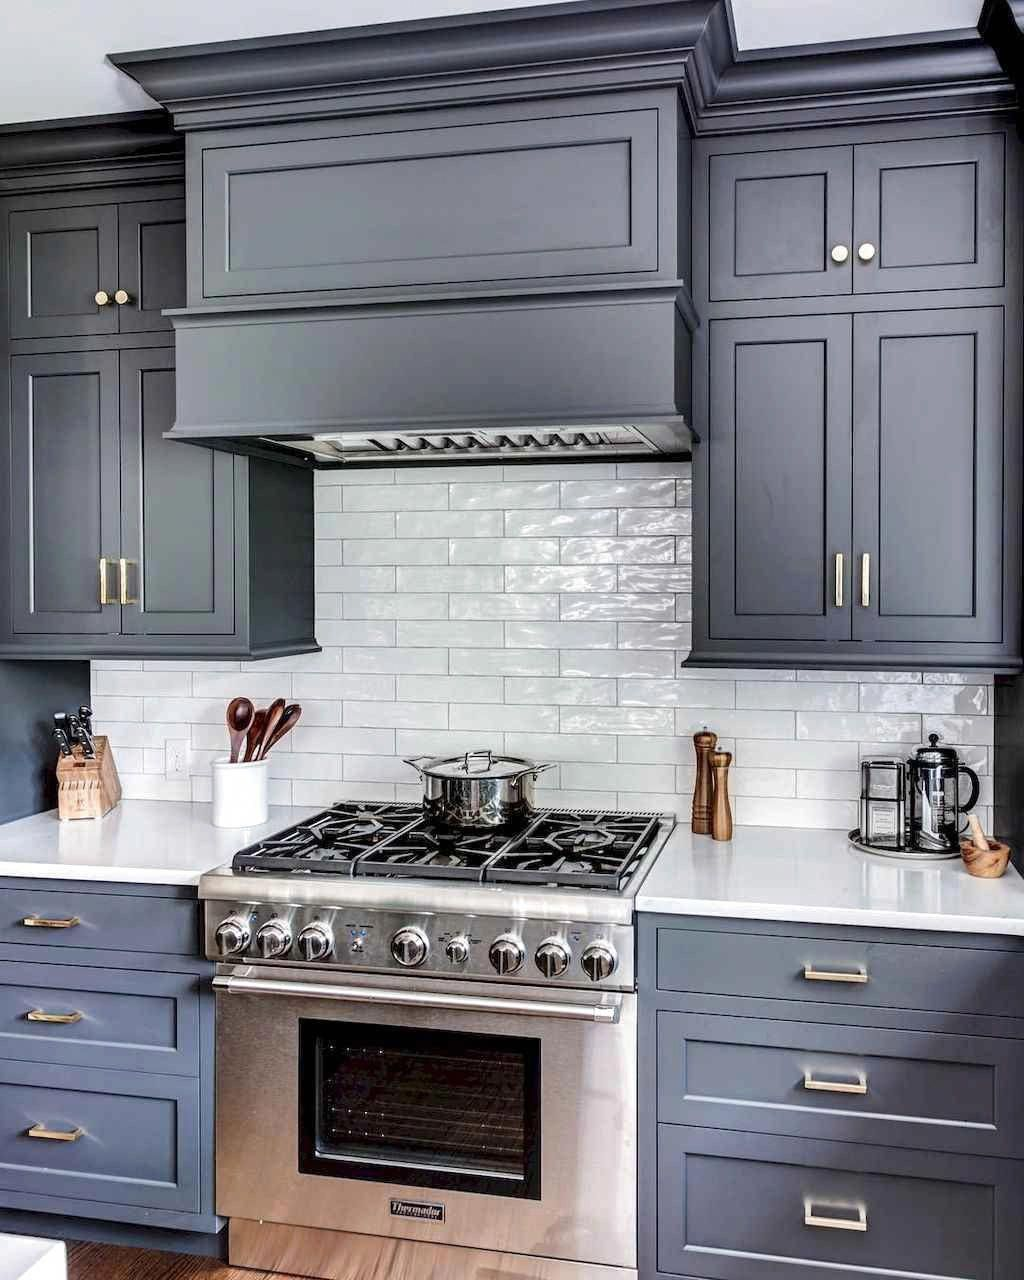 67 Amazing Farmhouse Kitchen Cabinet Design Ideas Amazingfarmhousekitchencabinetdesigni Grey Kitchen Designs Dark Blue Kitchen Cabinets Grey Kitchen Cabinets